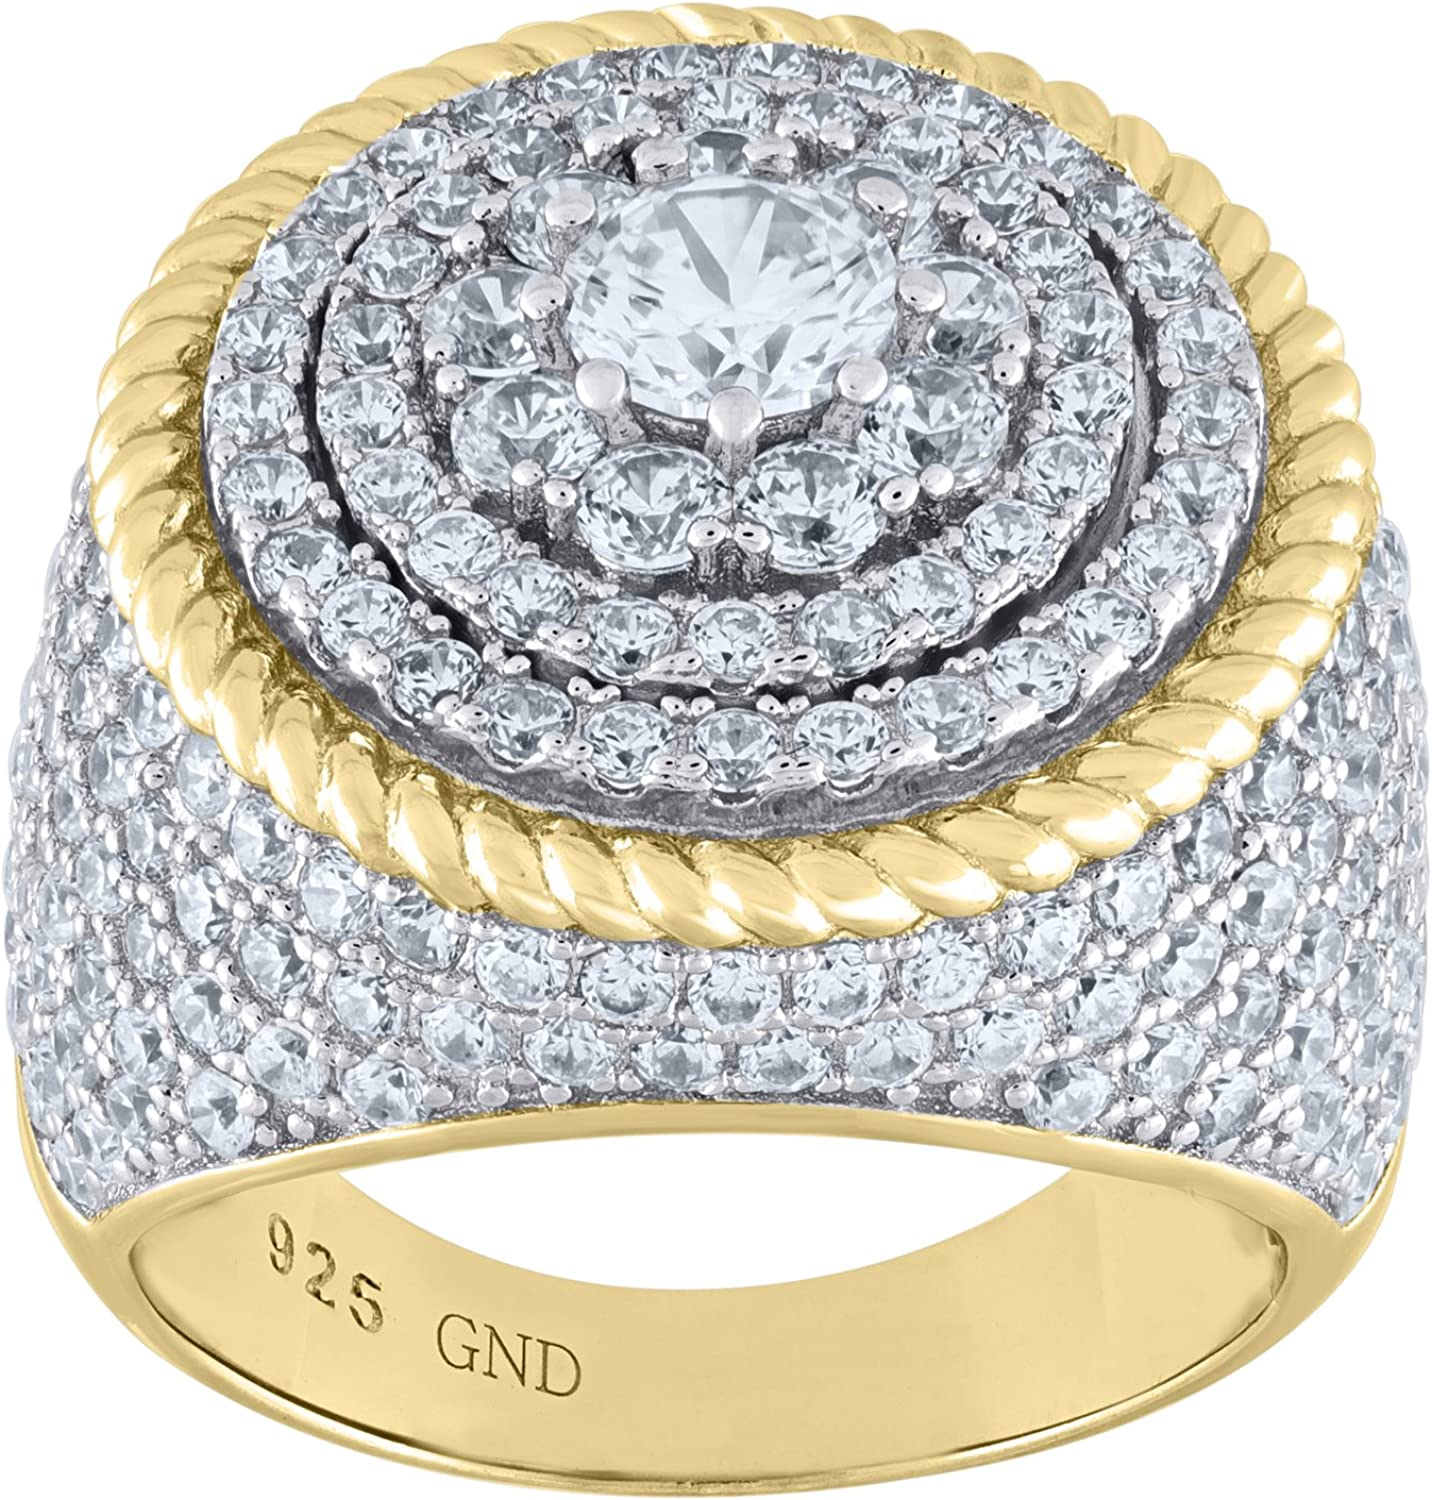 Jawa Jewelers 925 Sterling Silver Two-tone CZ Round Head SZ8-17.6gm Mens Ring Band